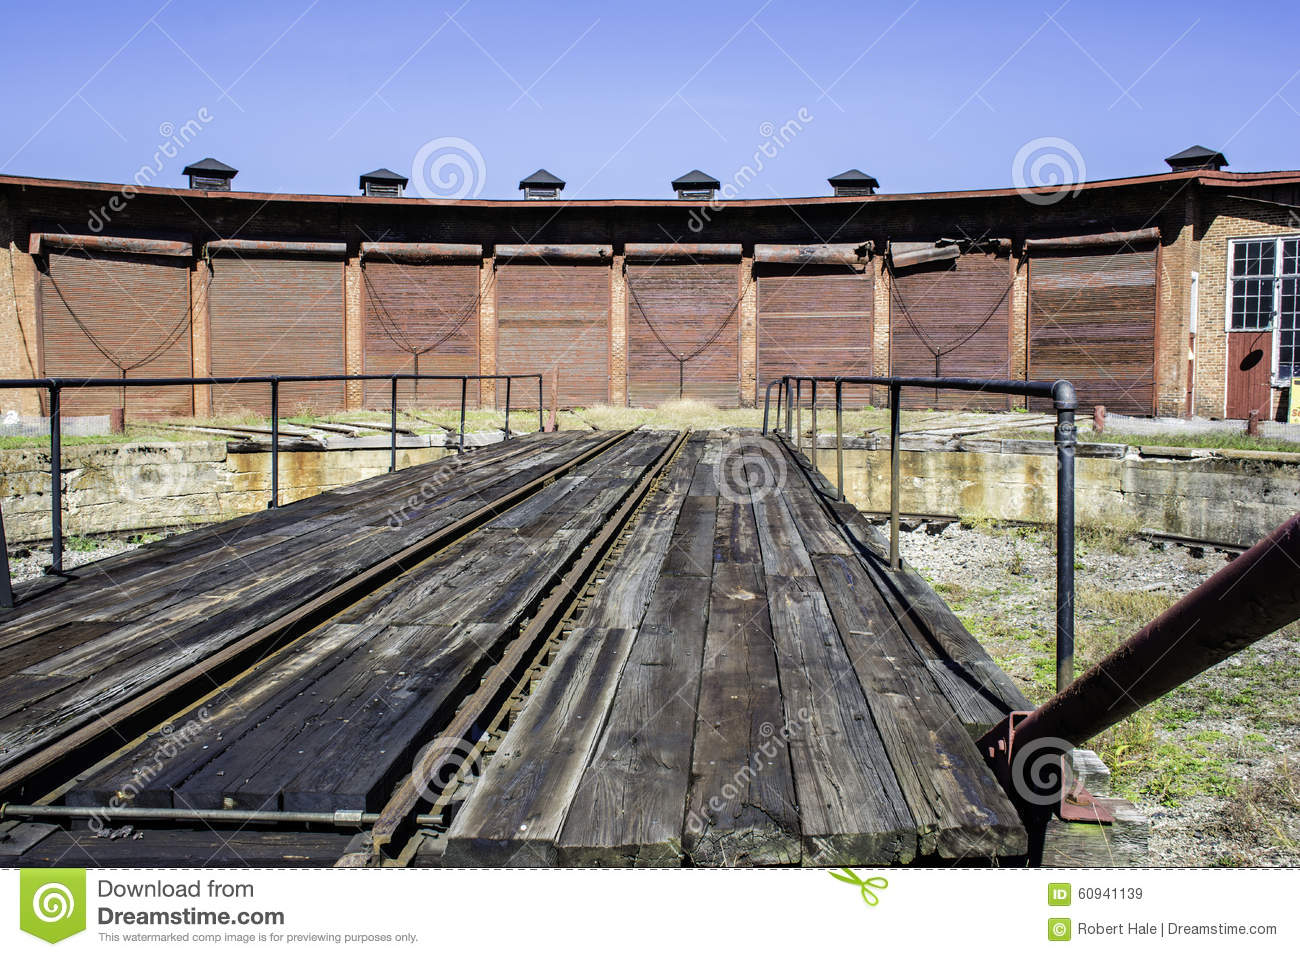 metal map cabinet with Stock Photo Railroad Roundhouse Old Brick Turn Table Semi Abandoned Rail Yard Image60941139 on Ovo Solid Satin Stainless Steel T Bar Handles 650 C2c 590 189 P likewise Railing Decking further Fofrdolowblg in addition 863099904e4d121c together with 3096105444.